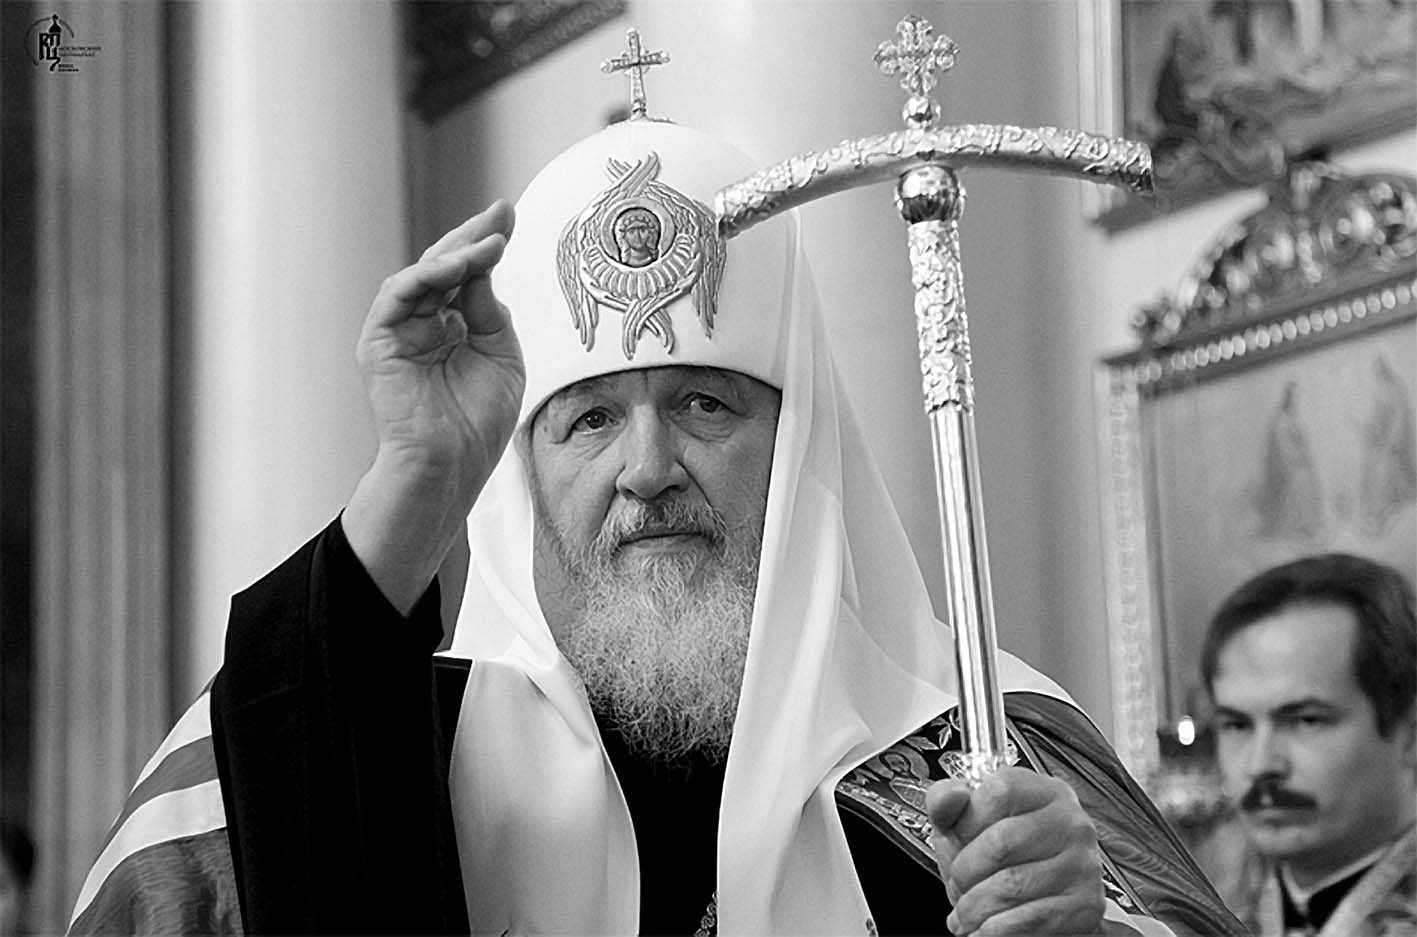 Kalin Yanakiev: Russia trying to spilt the Orthodox Church